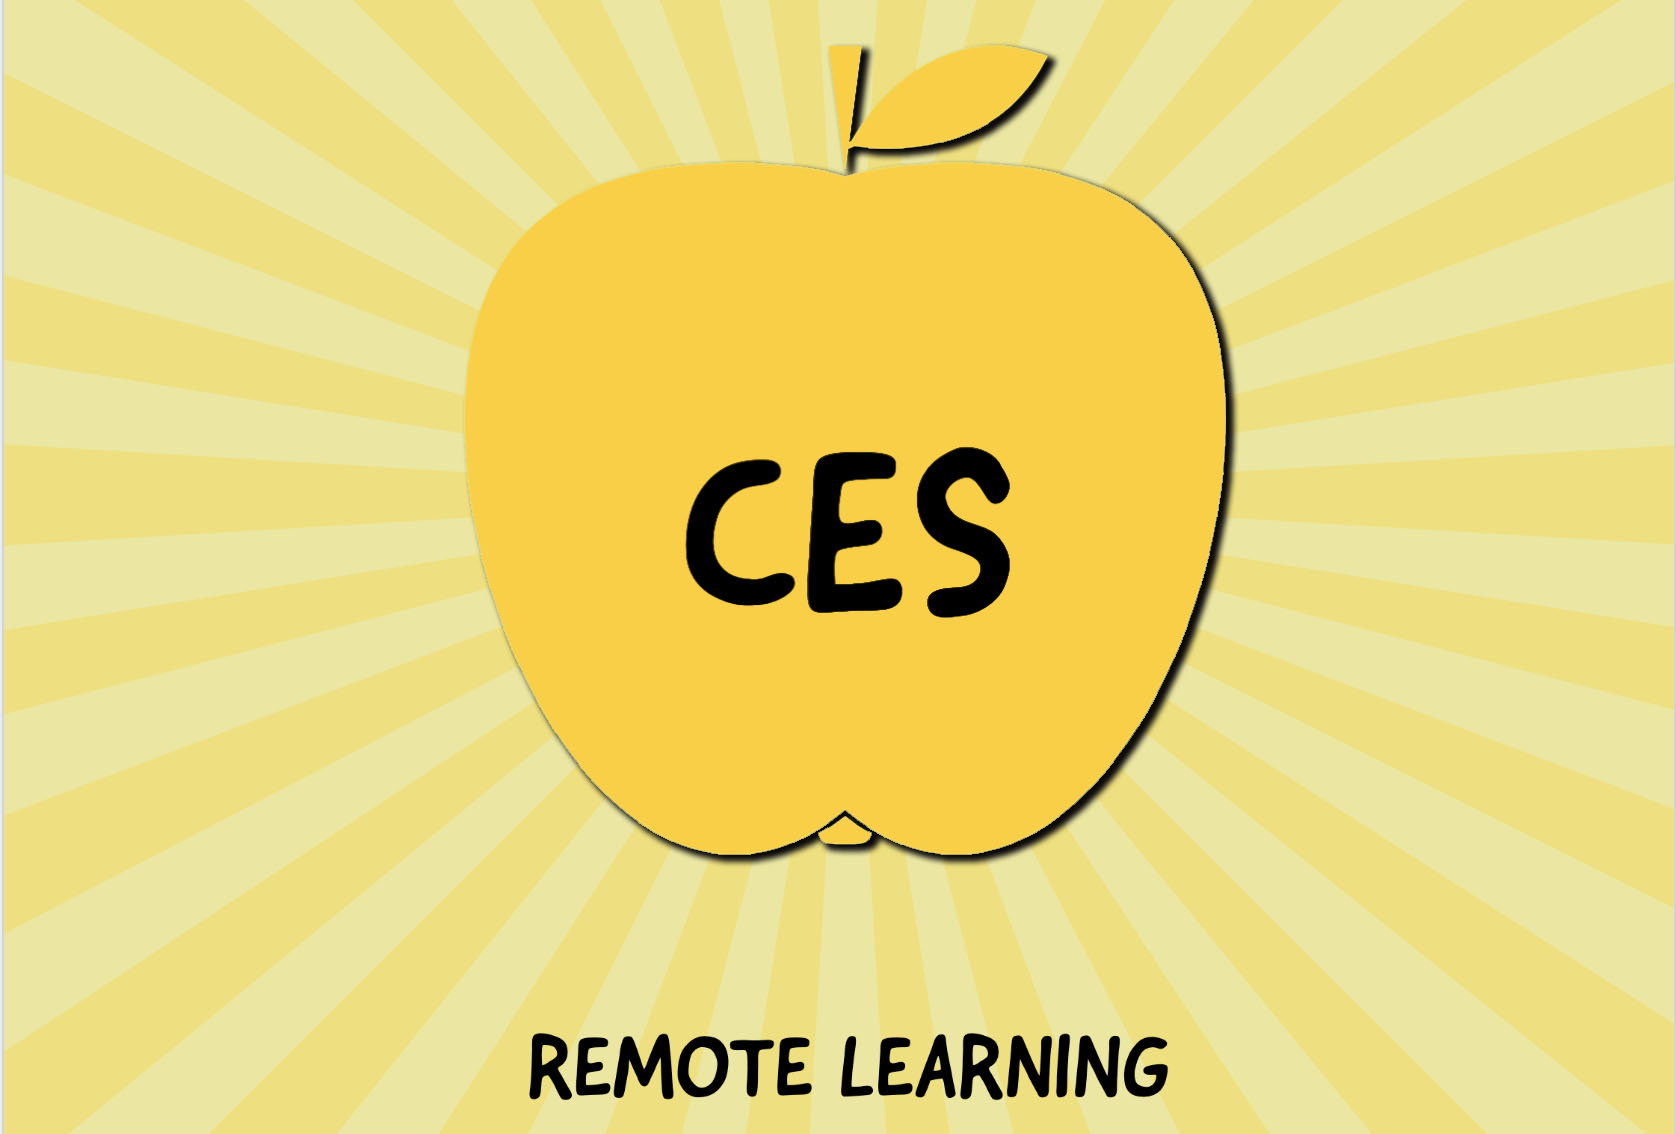 CES Remote Learning